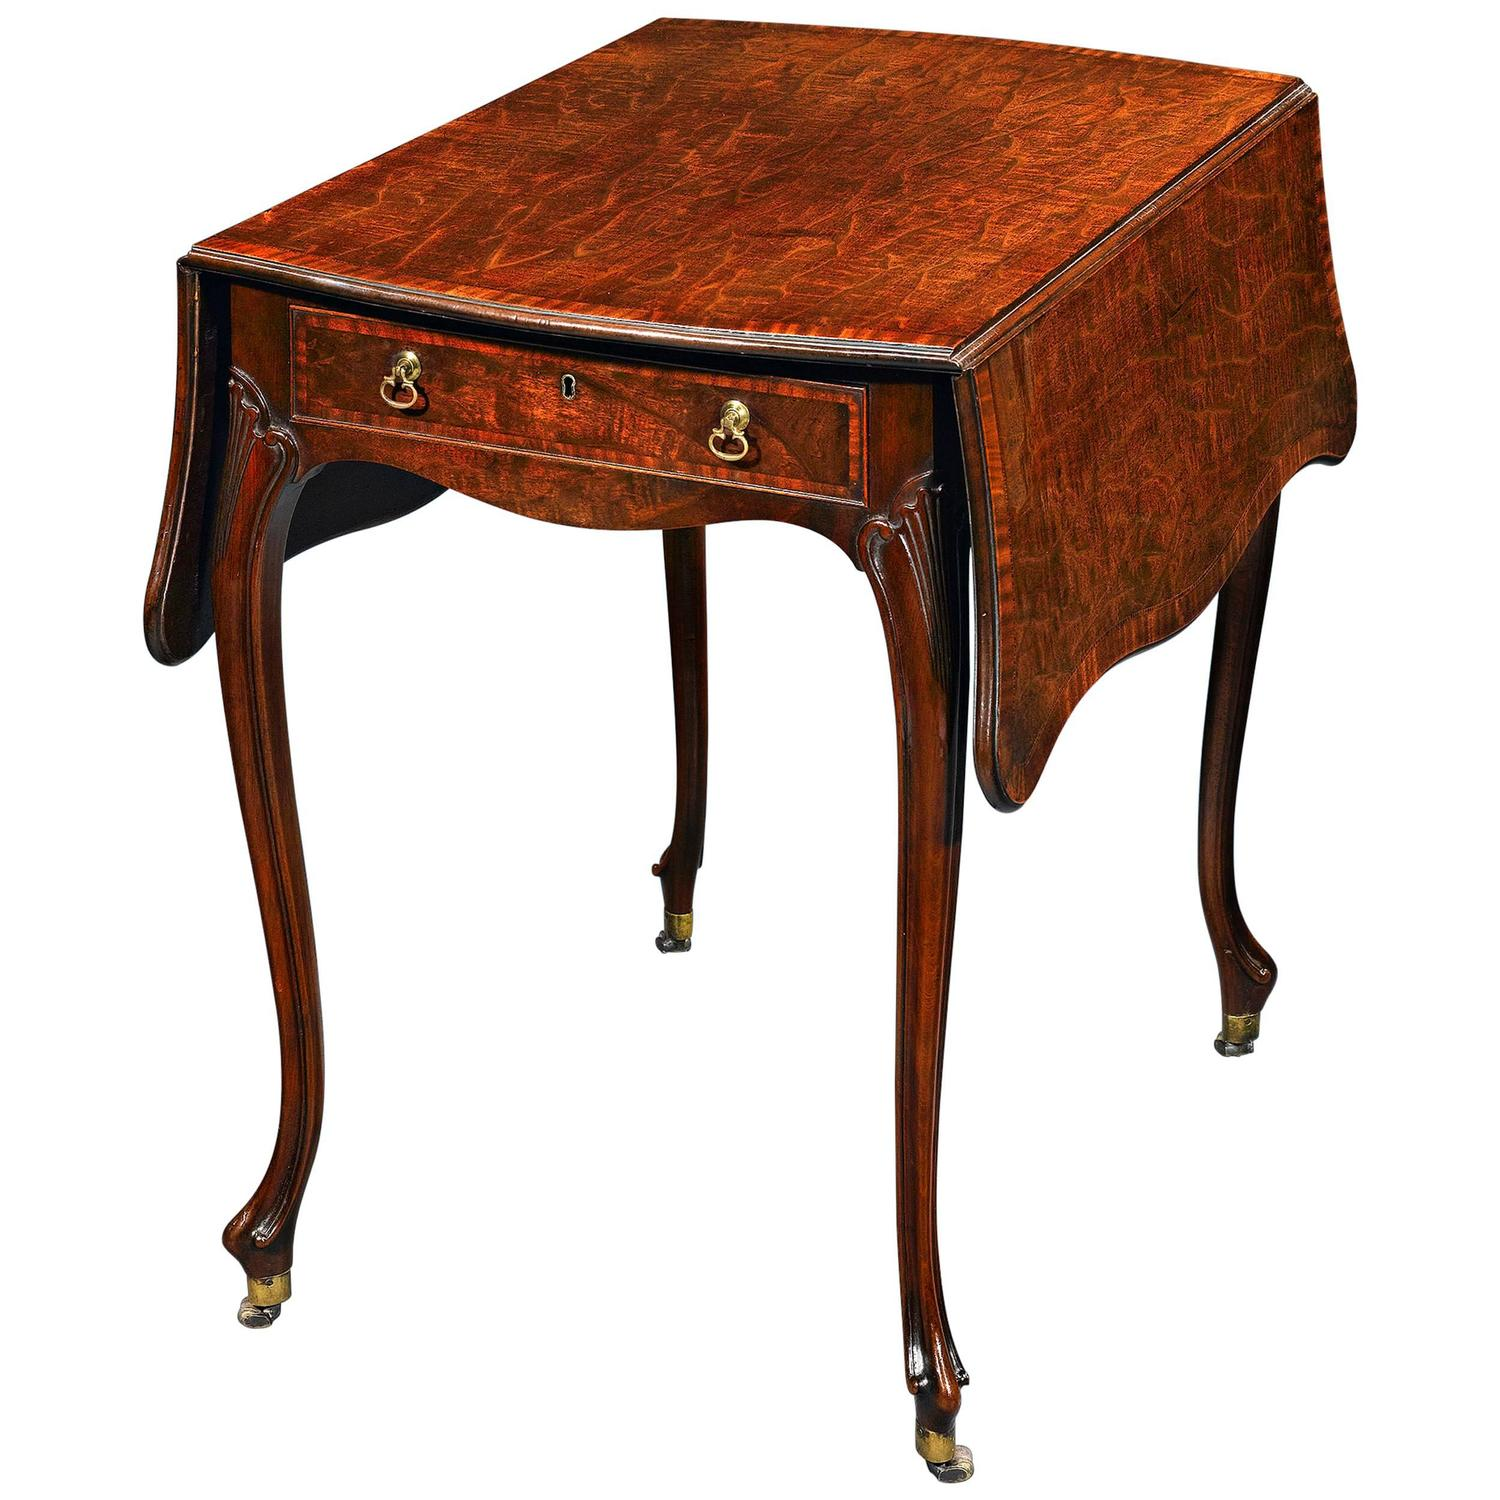 Gentil Thomas Chippendale Pembroke Table At 1stdibs